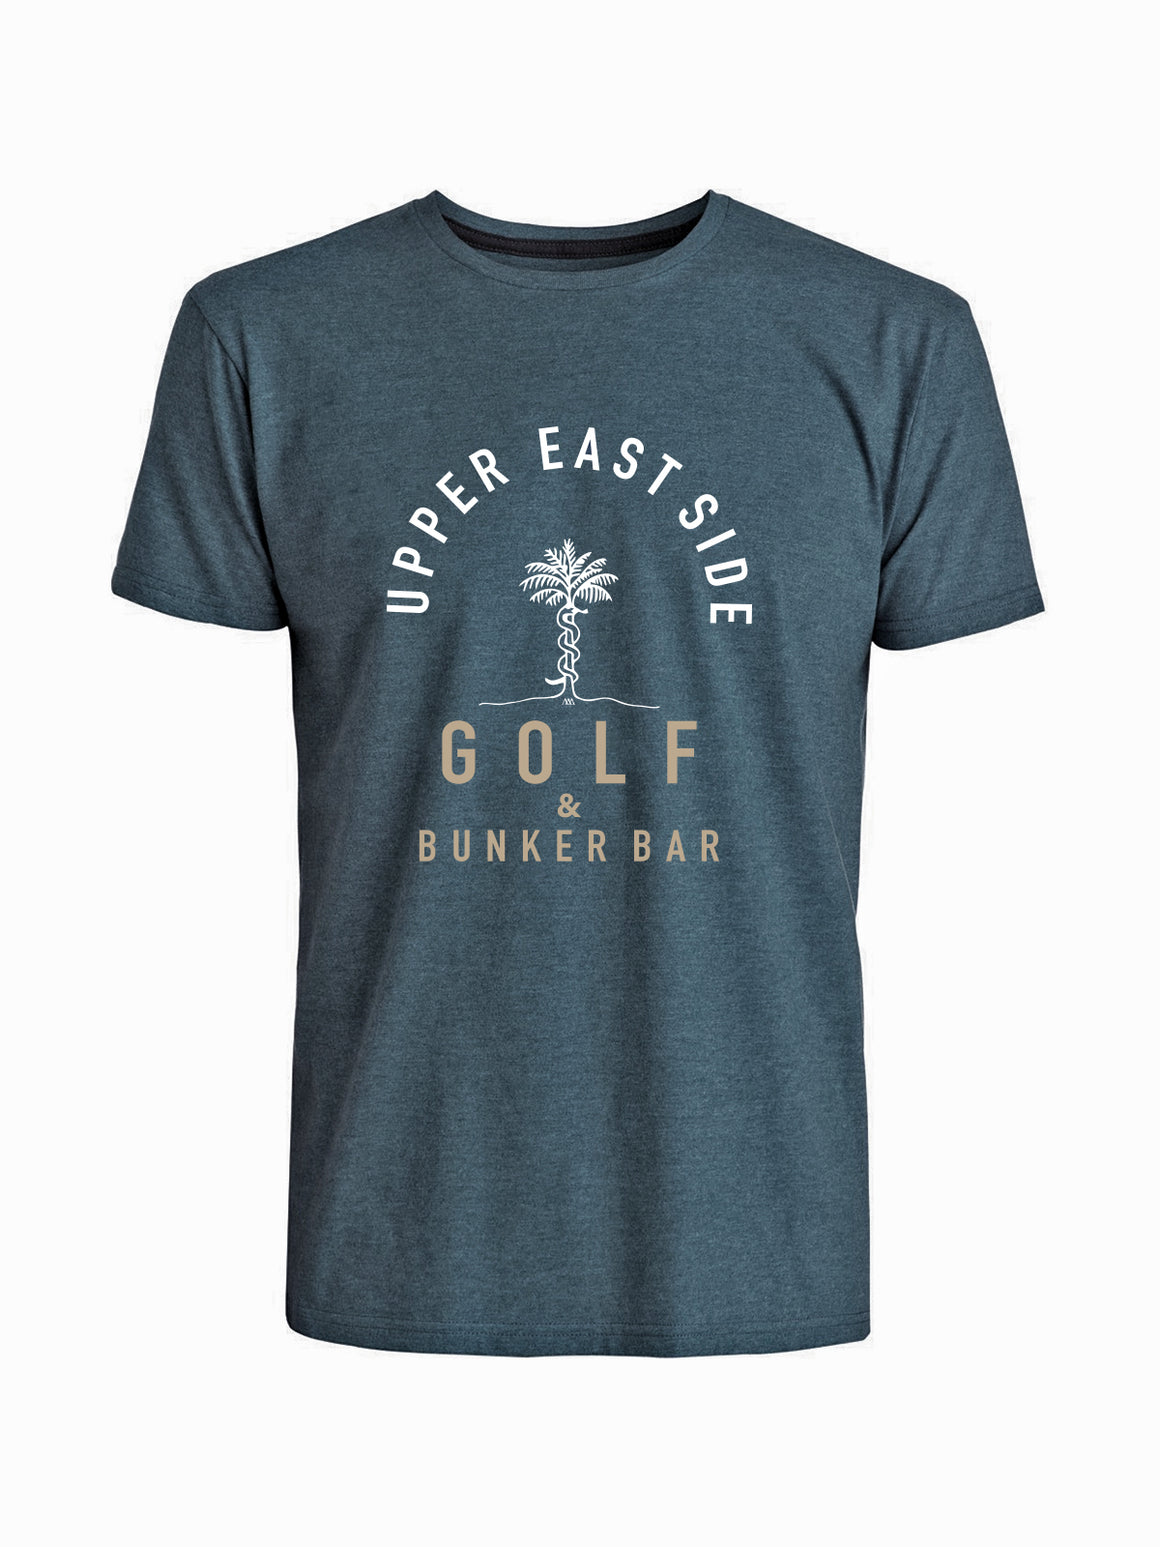 Upper East Side Tee Shirt - Navy (White / Wheat)